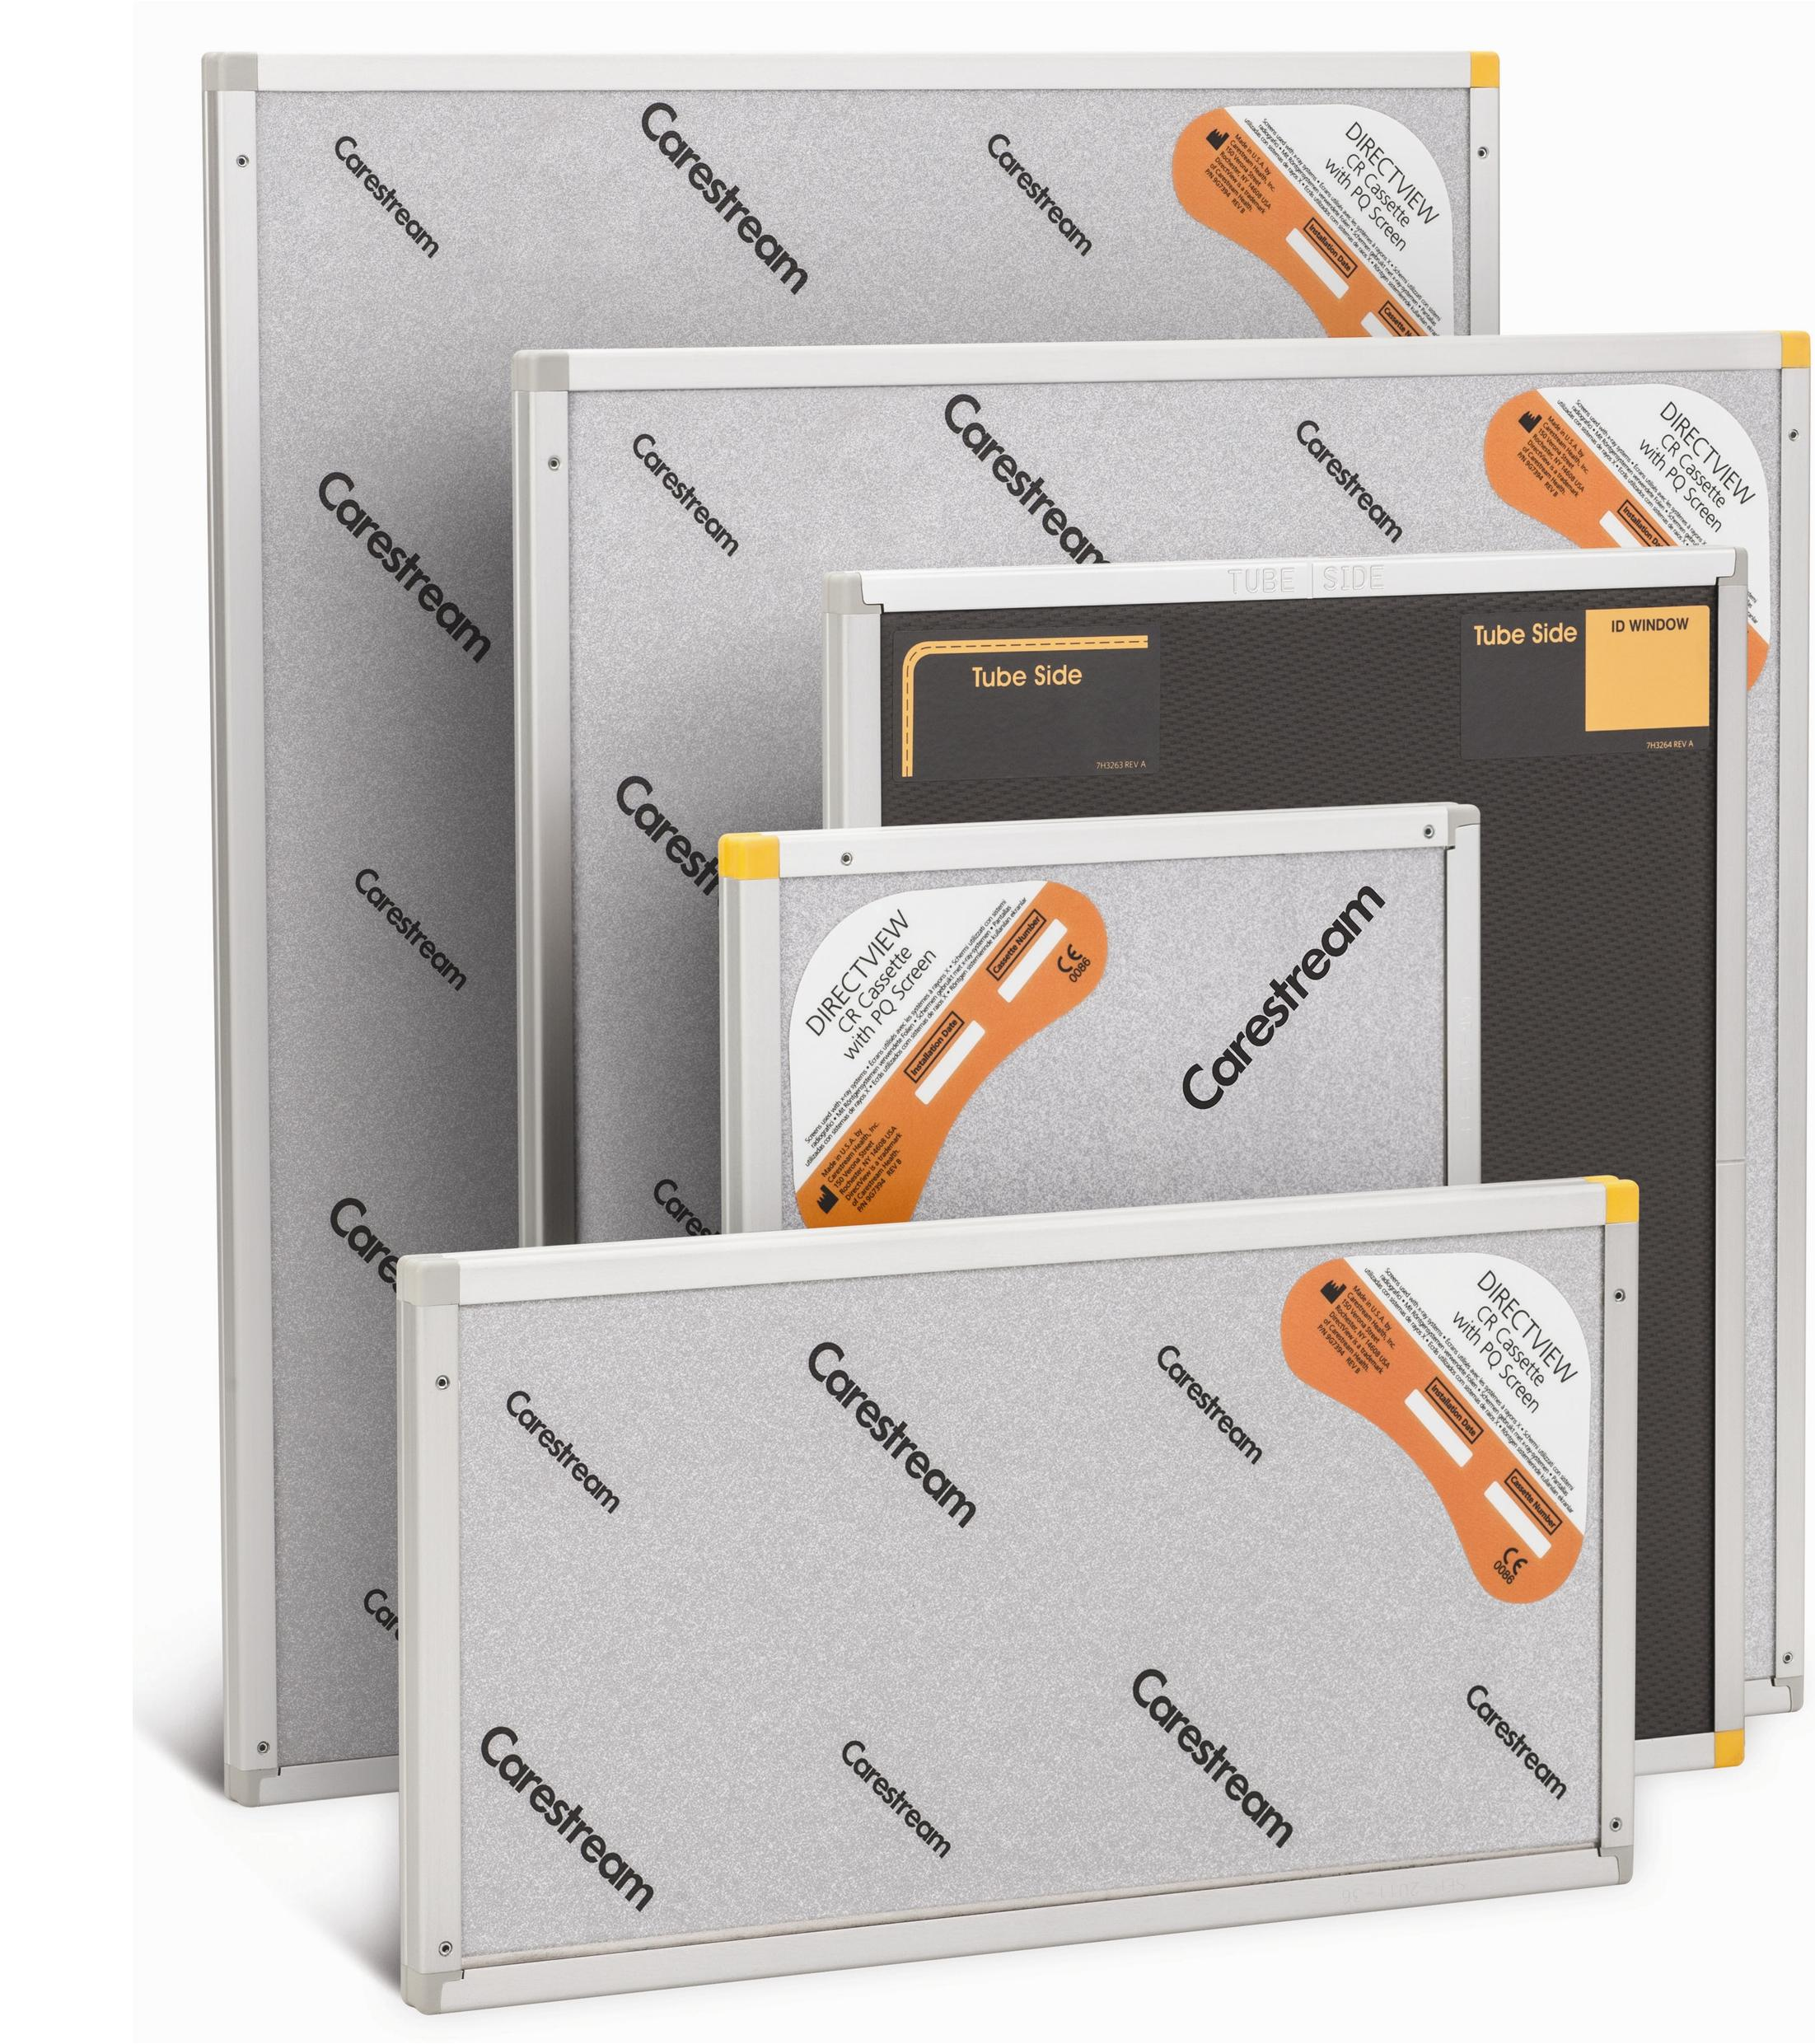 Carestream/Kodak CR 500 Cassettes